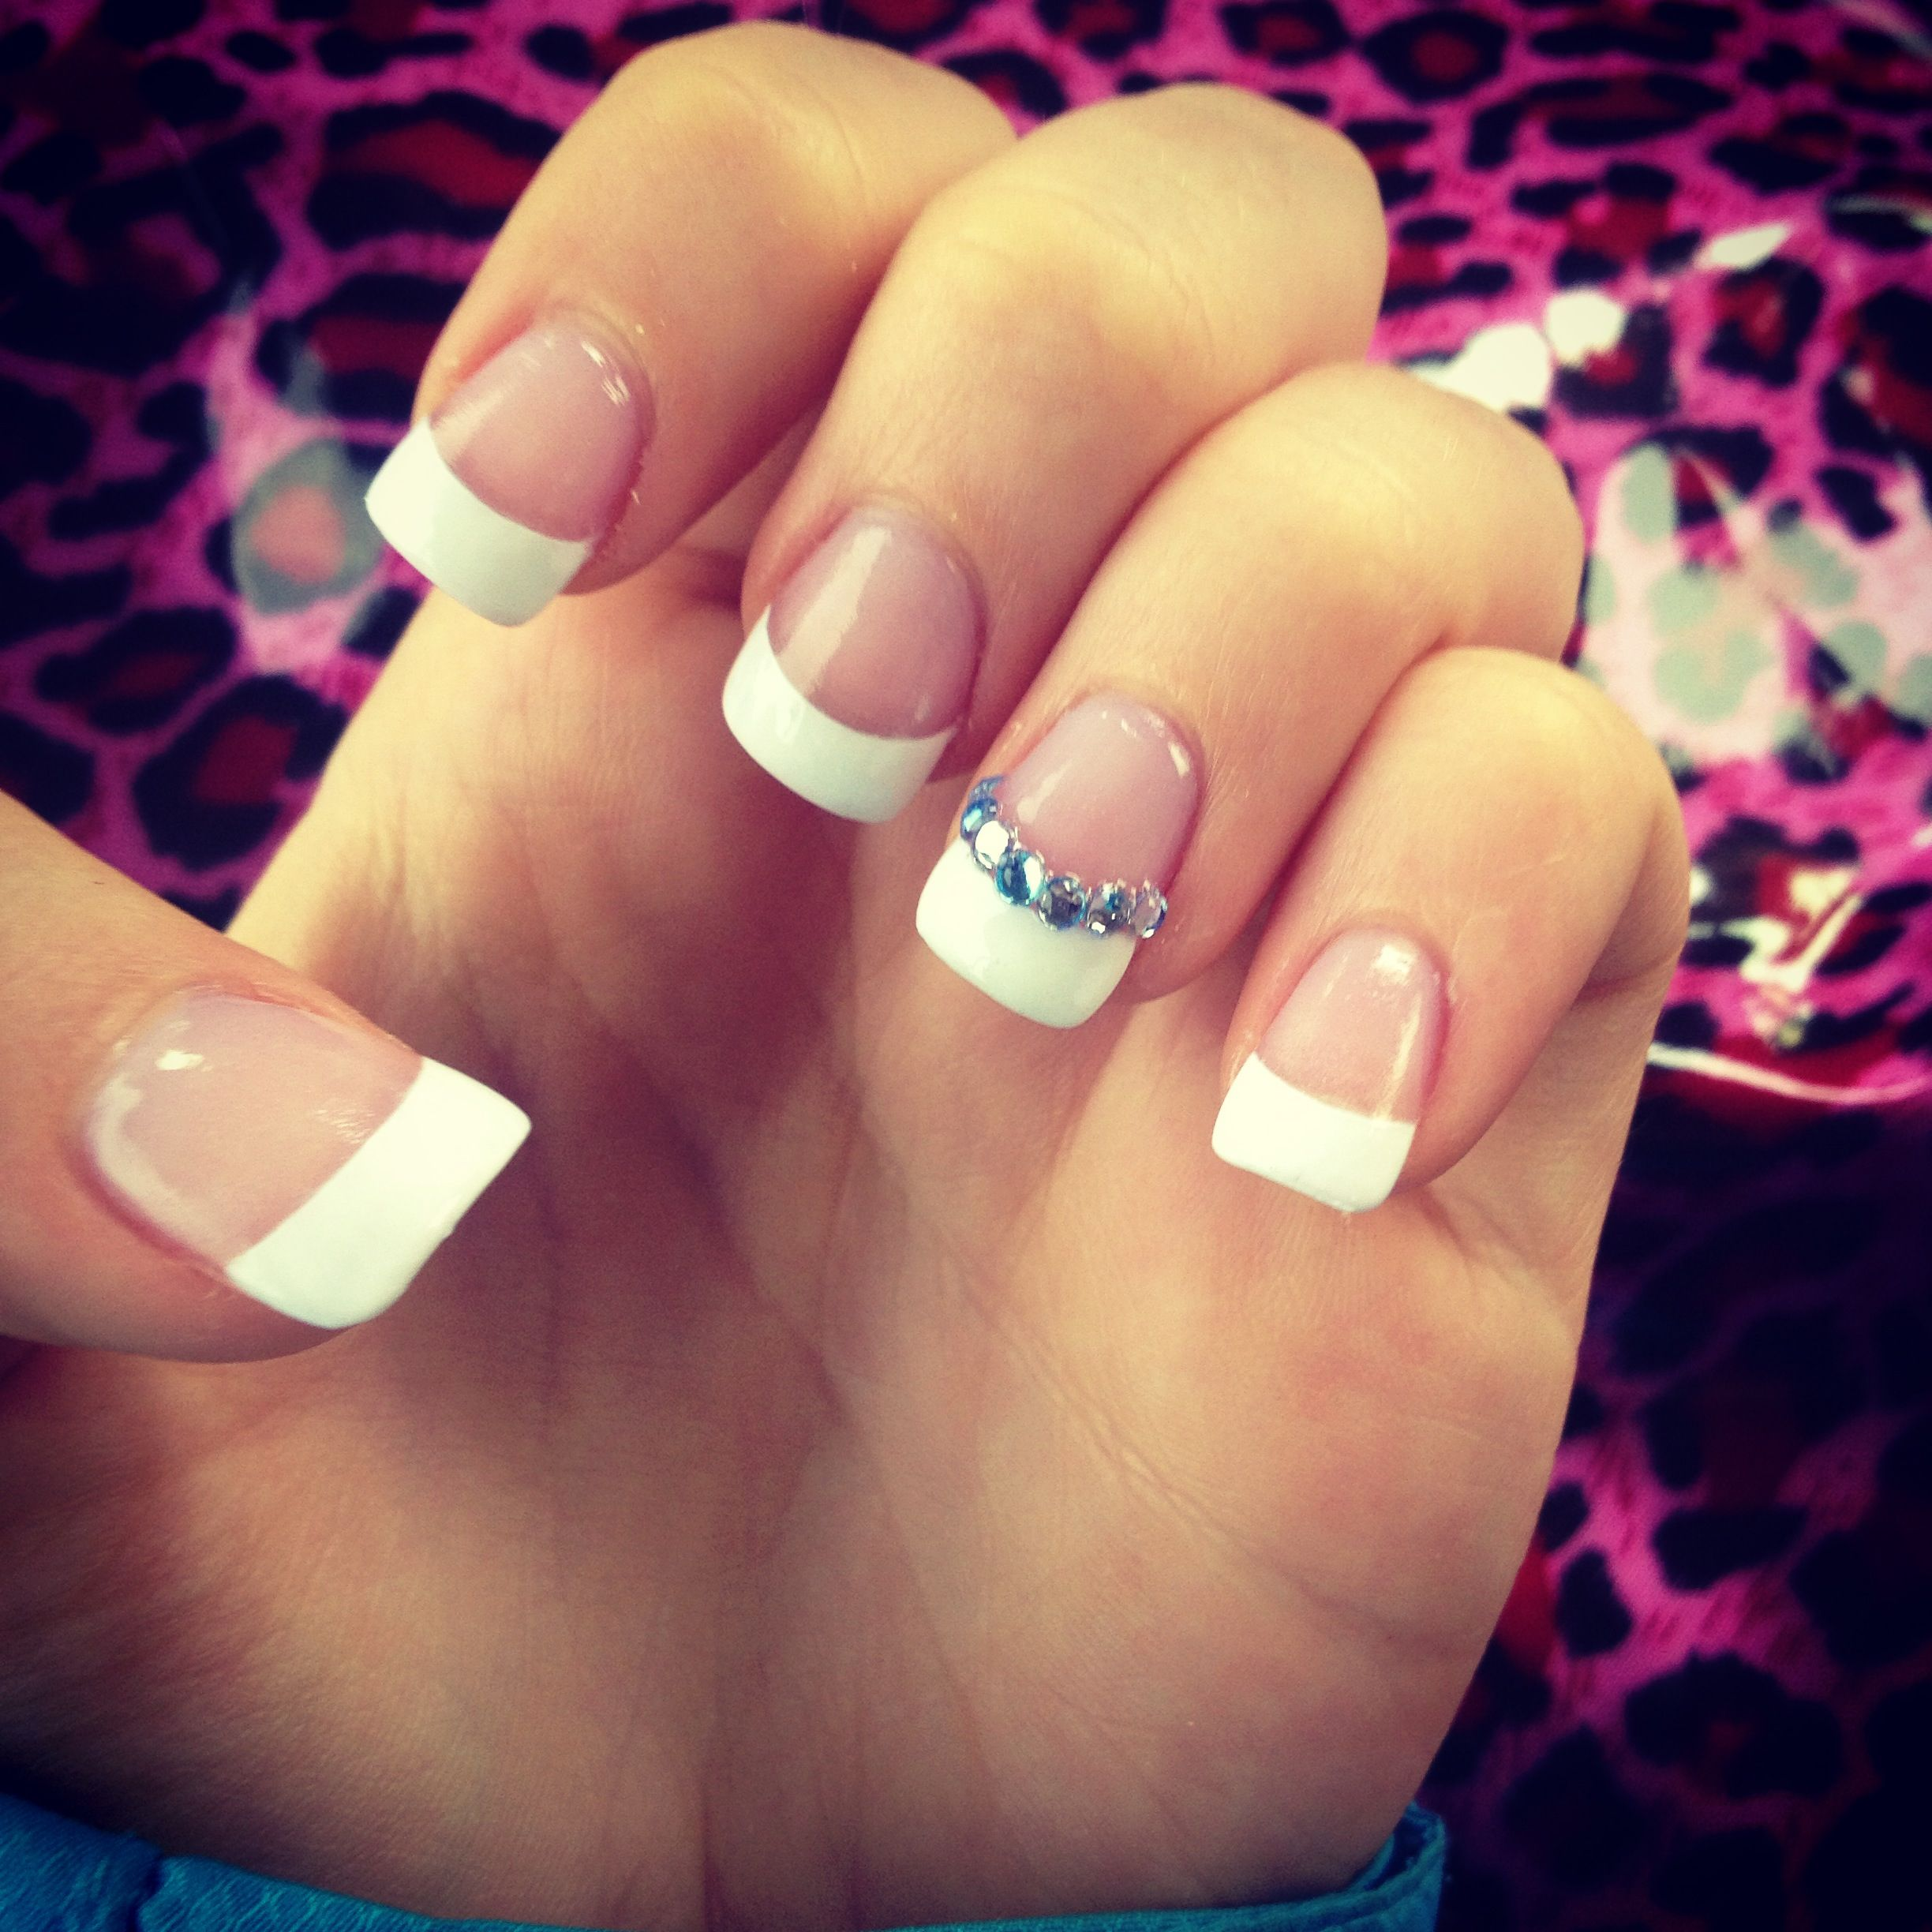 Blue Prom Nails French Tip: French Manicure With Blue Rhinestones! 💙 #nails #love